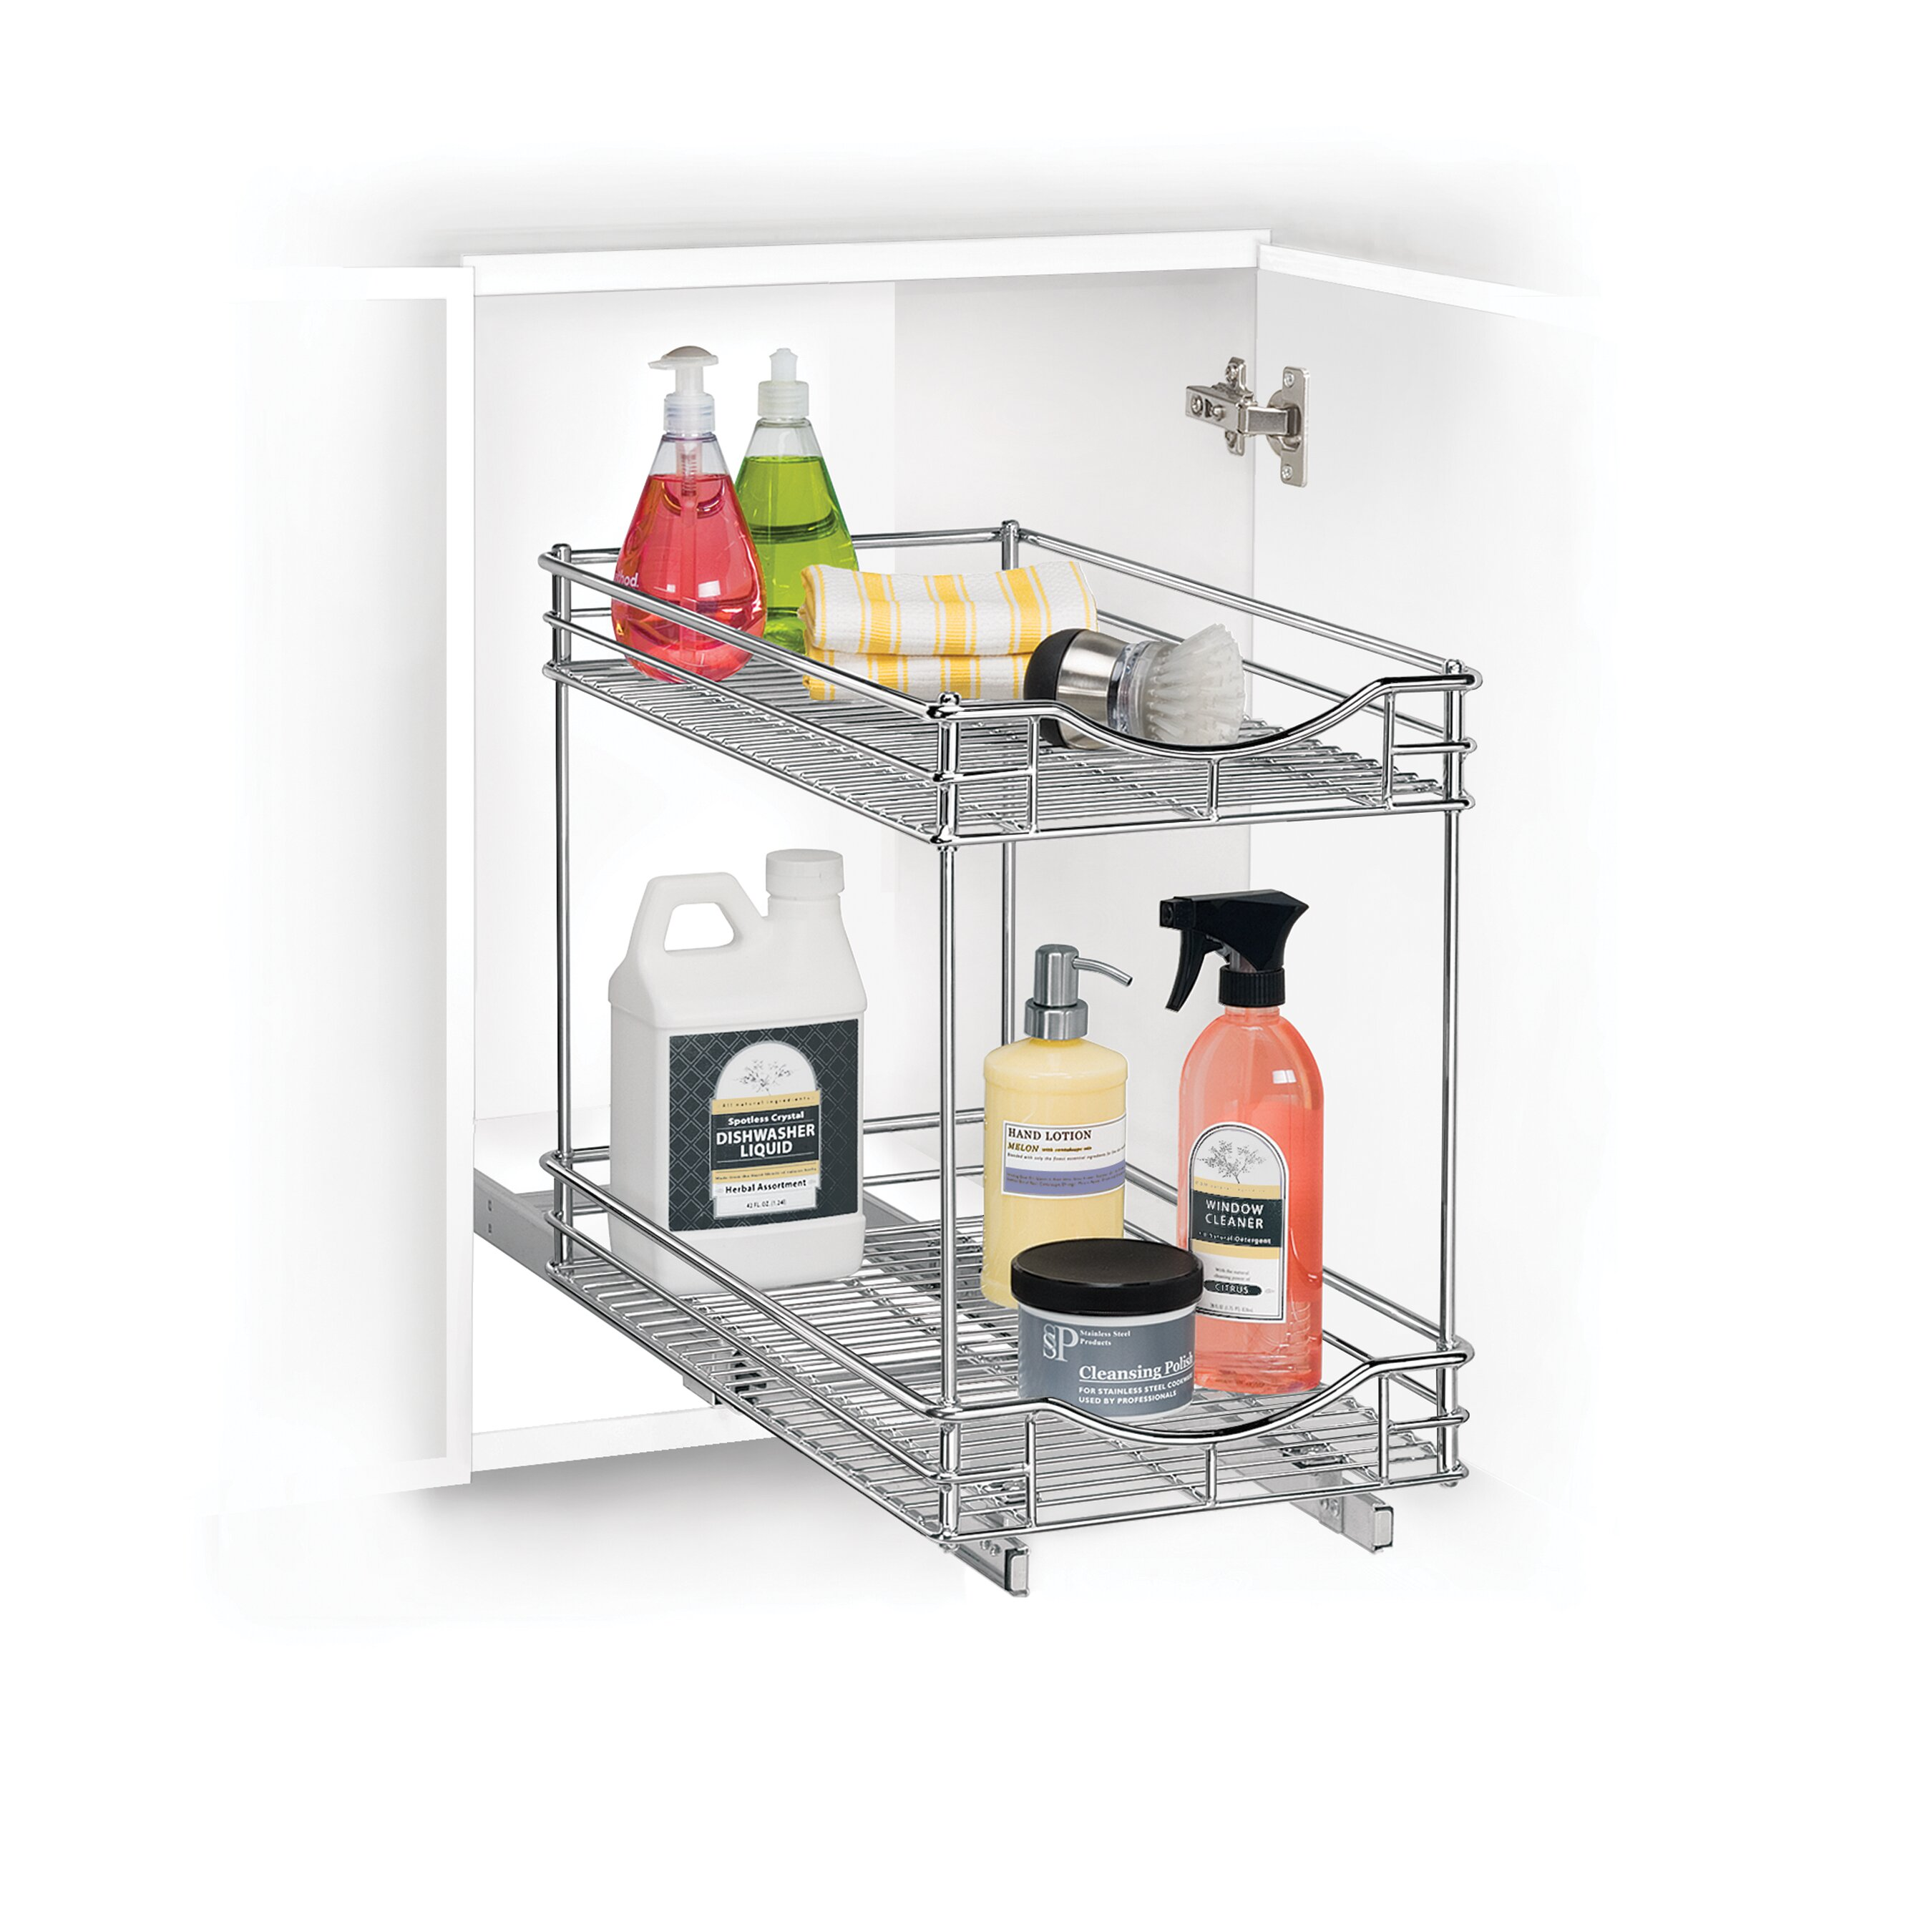 Lynk Roll Out Cabinet Organizer: Lynk Lynk Professional Roll Out Double Shelf